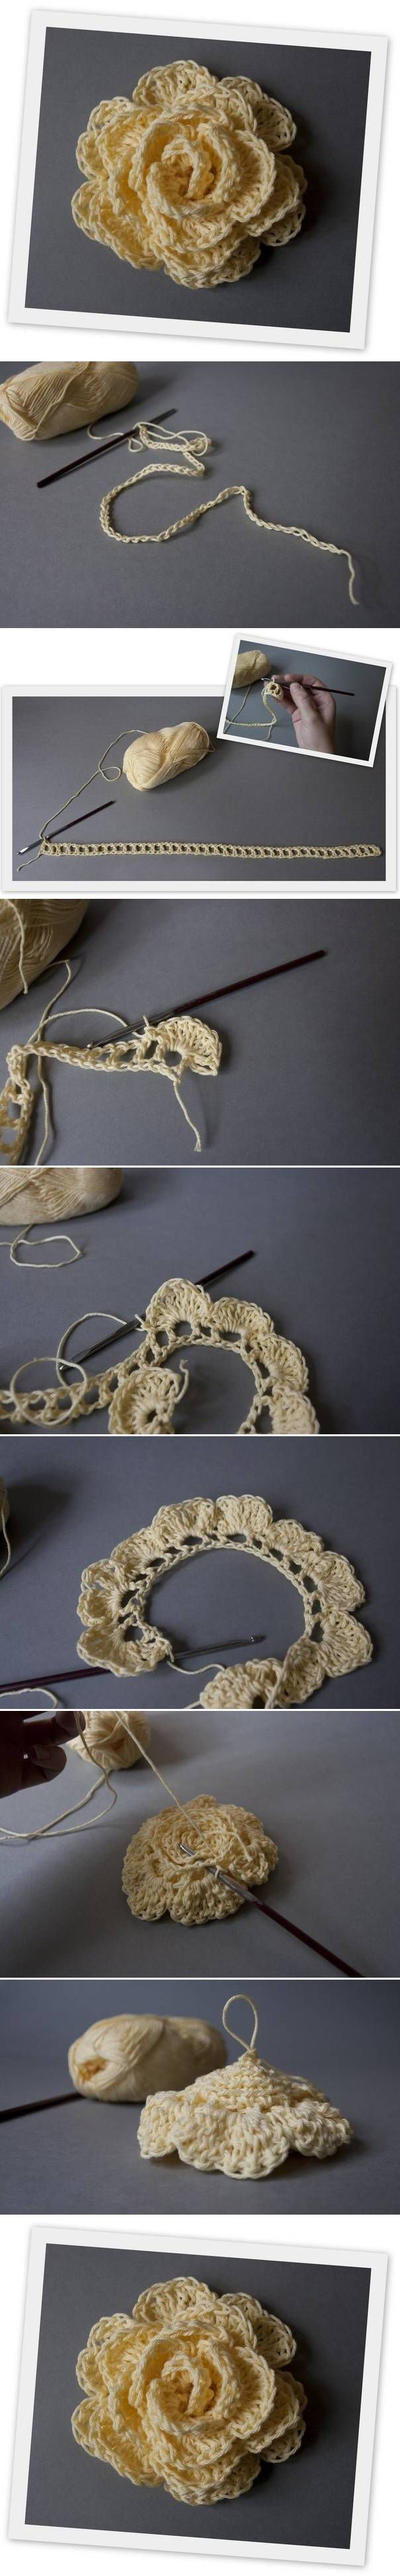 DIY Hook Rose DIY Hook Rose. Sempre un modello fotografico per le rose, ma sempre utile